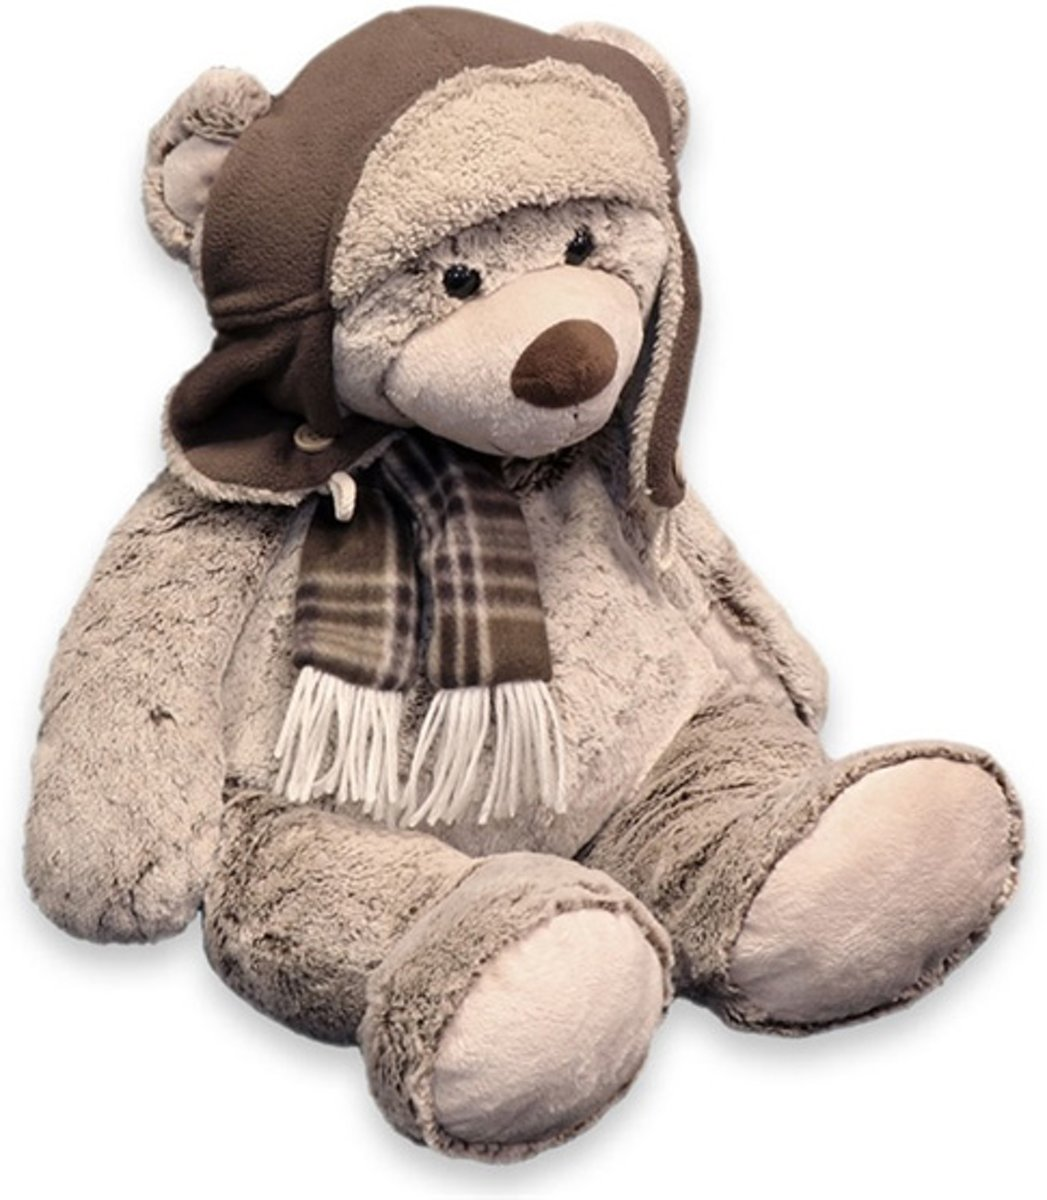 Unique Living Bear Pilot Plush - Knuffeldier - 37 cm - Bruin